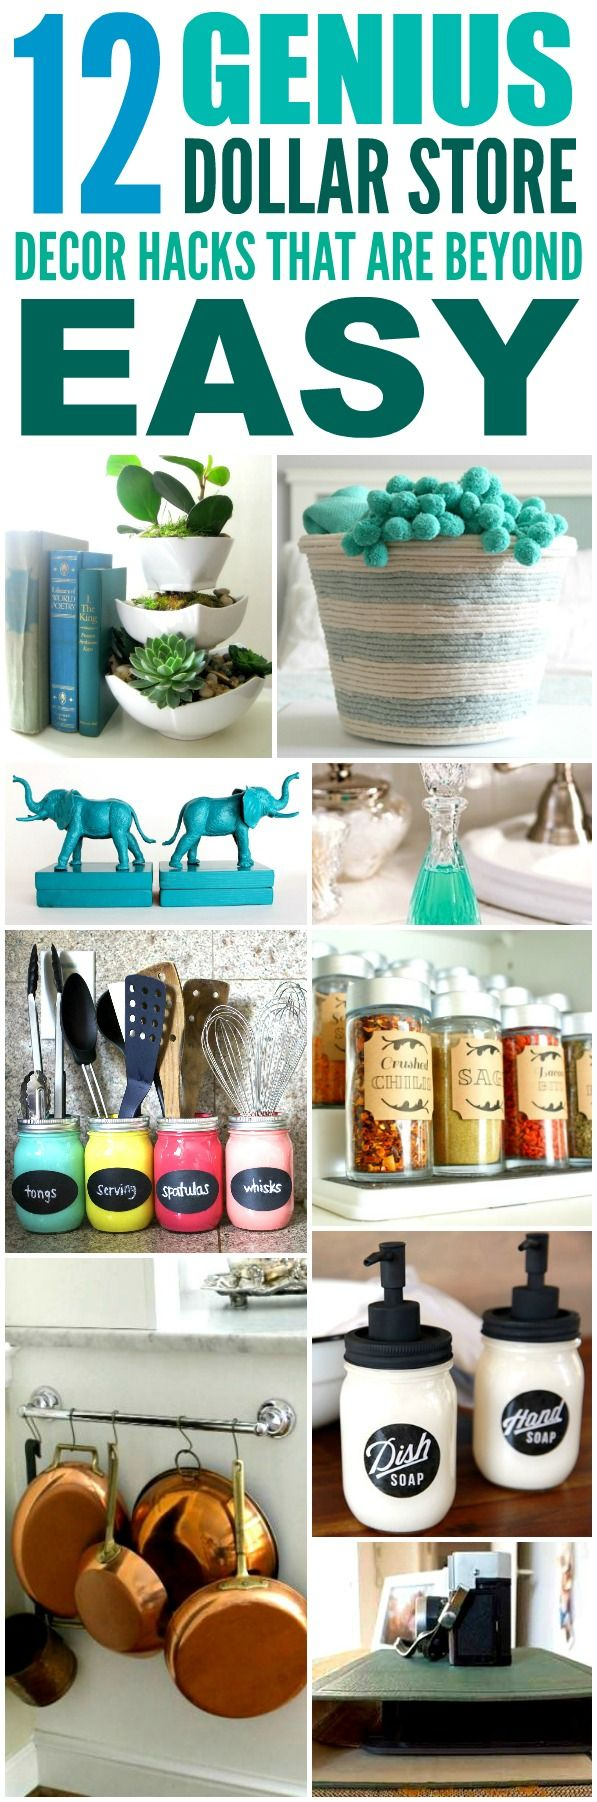 These 12 Dollar Store Decor Hacks are THE BEST! I'm so happy I found these AMAZING home decor ideas and tips! Now I have great ways to decorate my home a a budget and decorate on a dime! Definitely pinning!